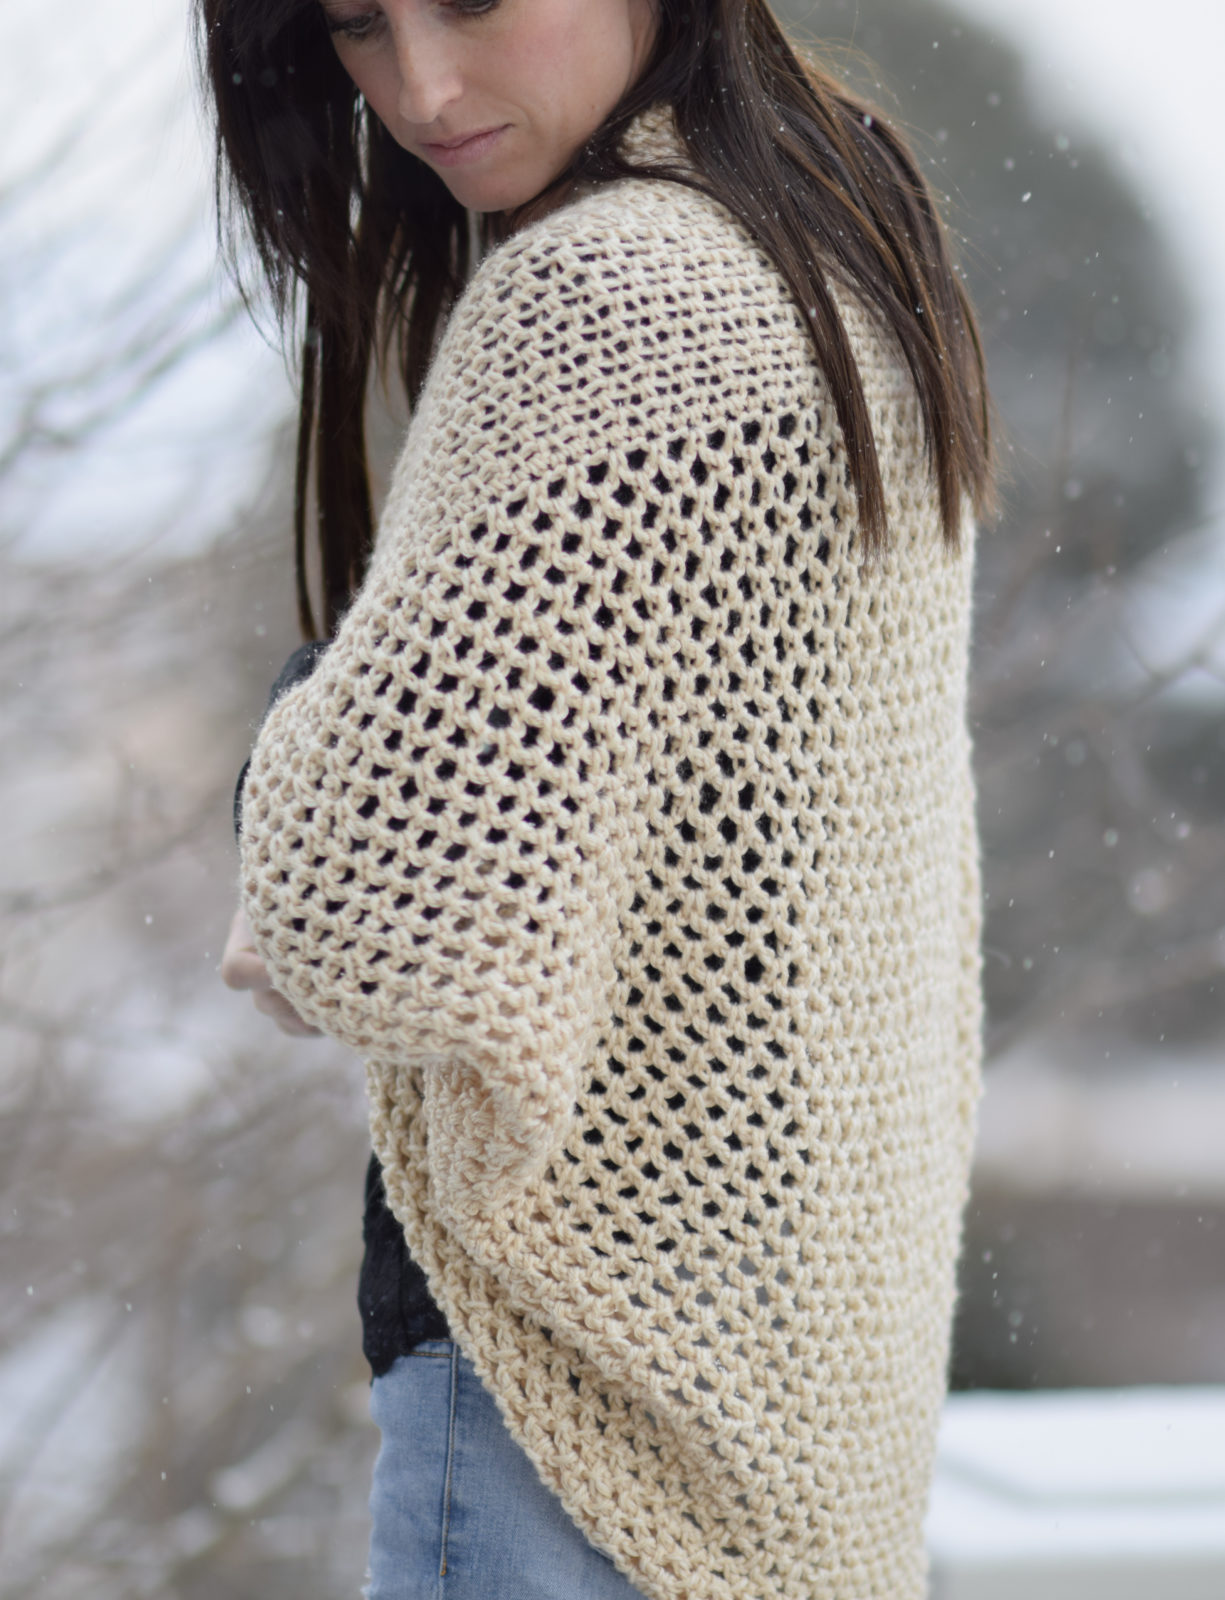 Mod Mesh Honey Blanket Sweater Mama In A Stitch